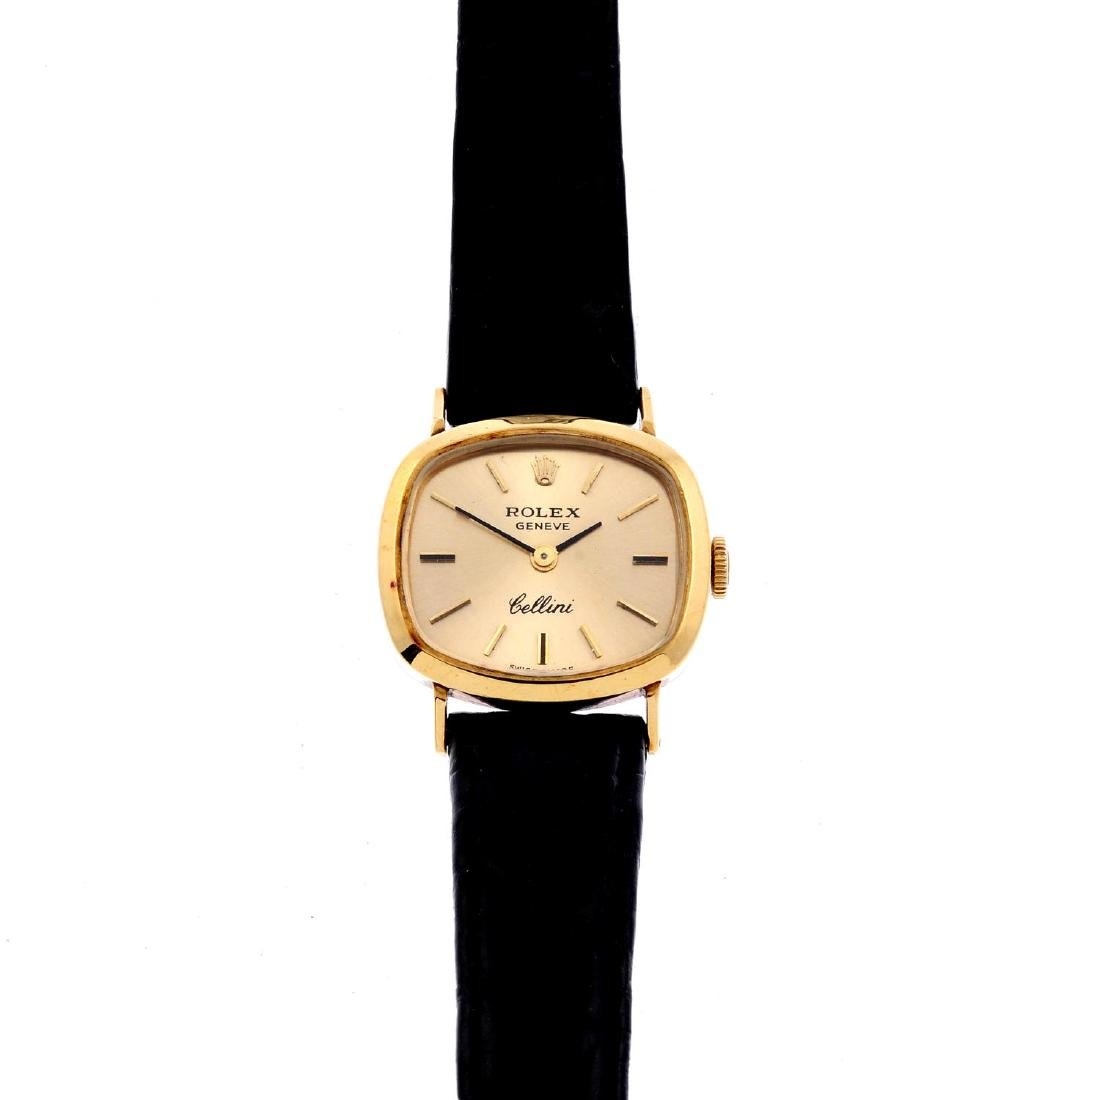 ROLEX - a lady's Cellini wrist watch. 18ct yellow gold